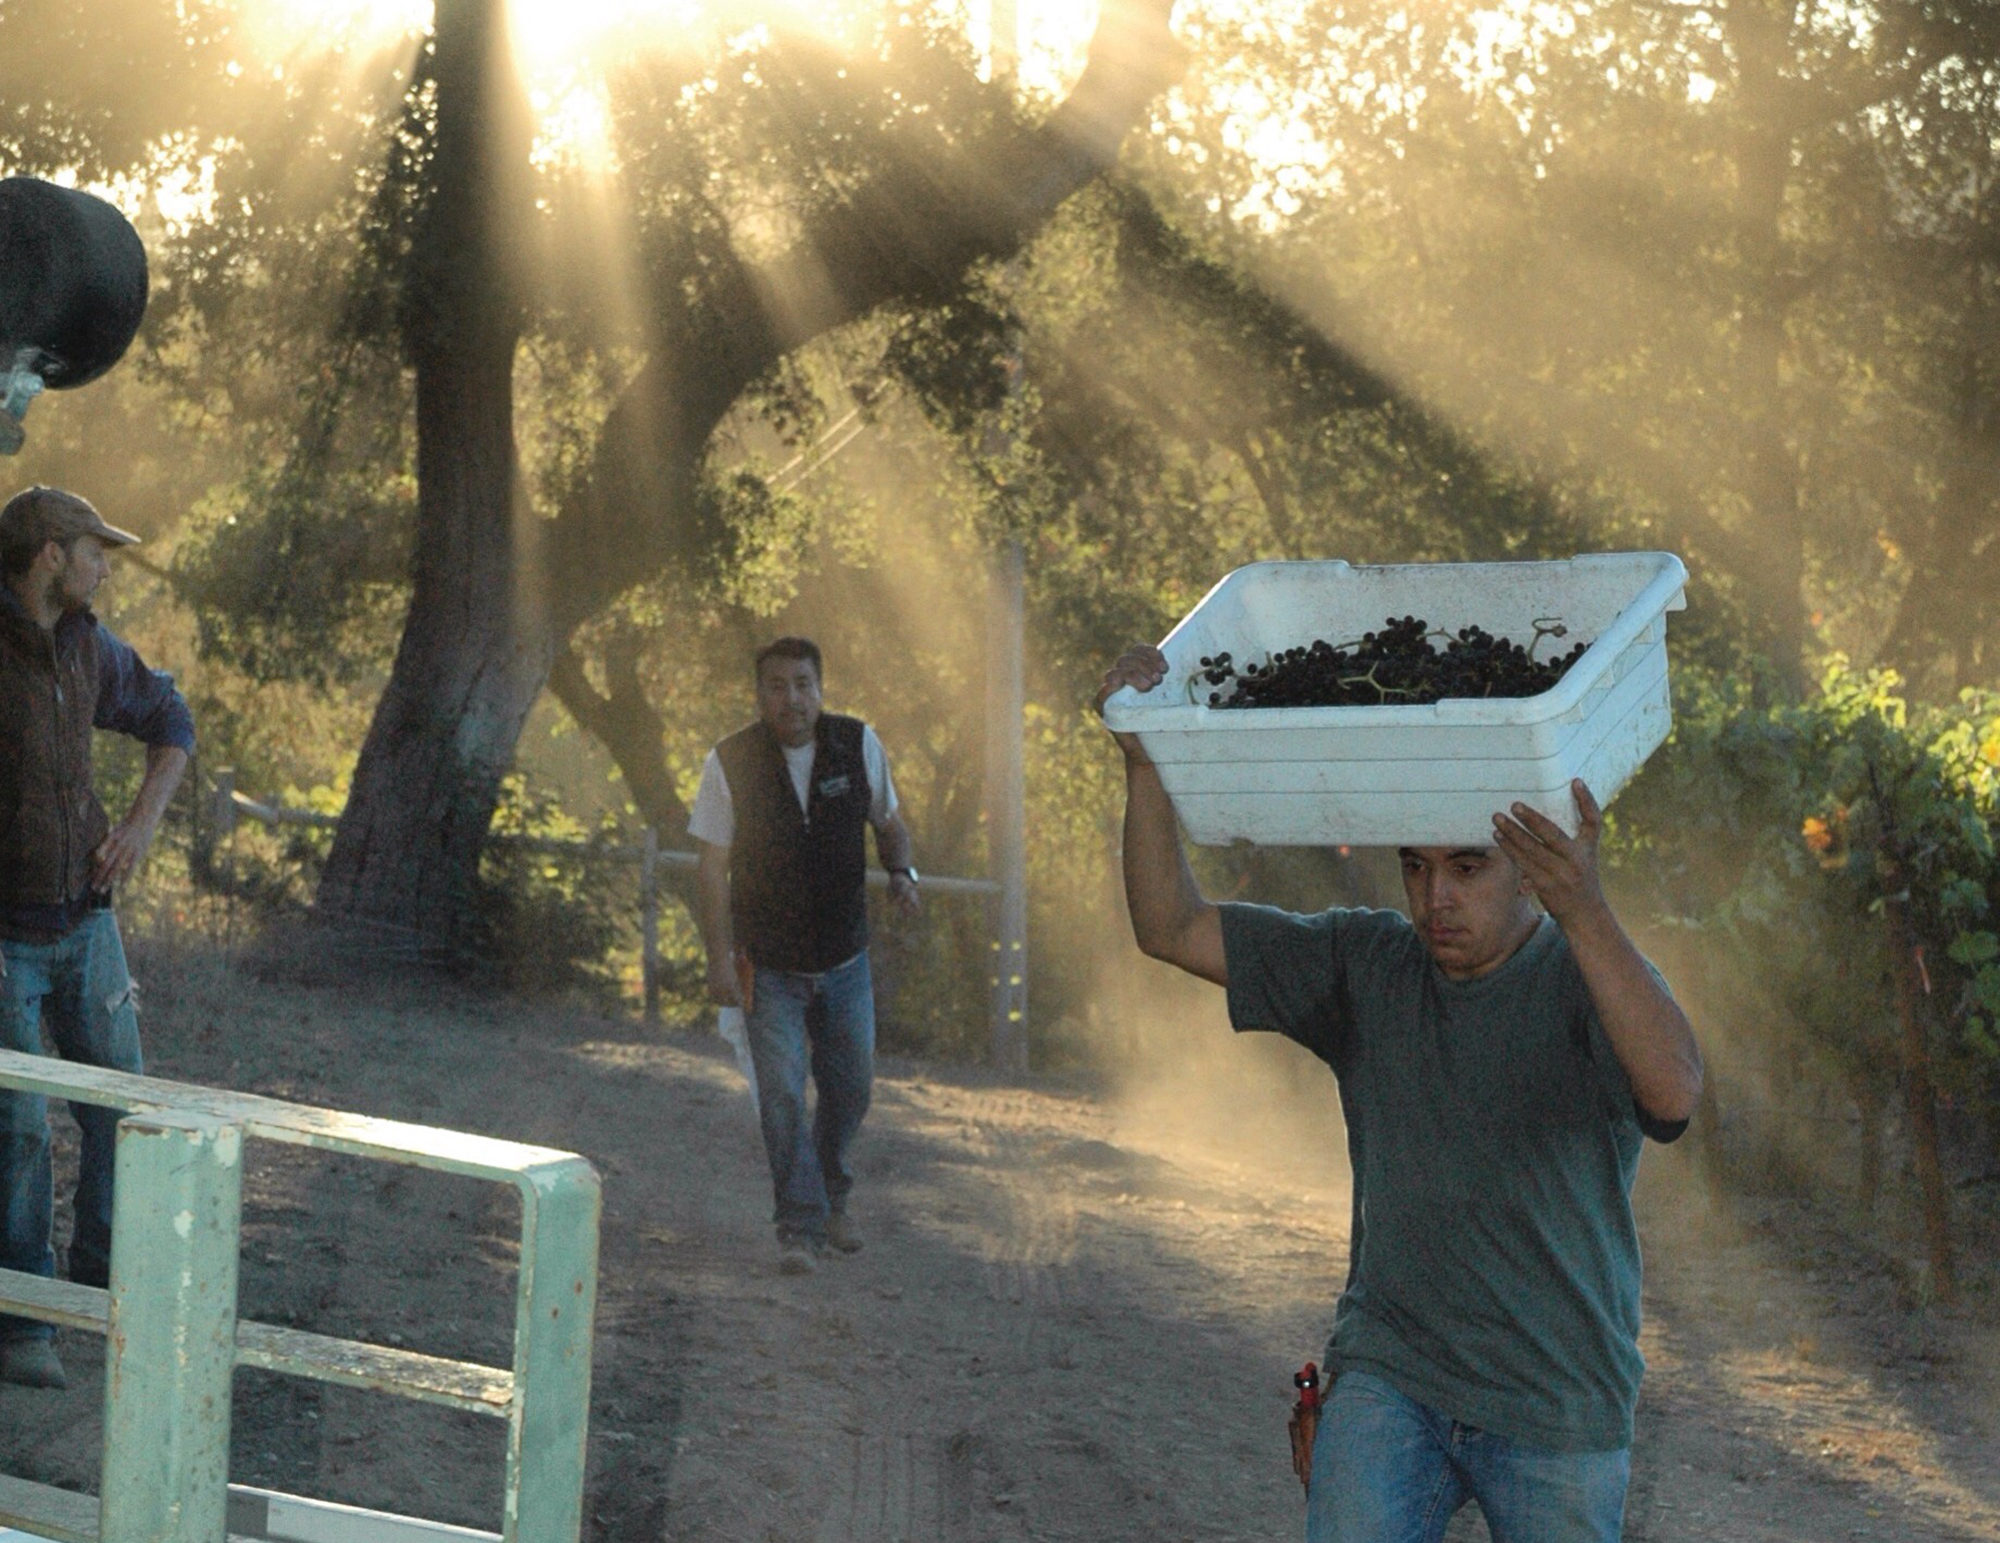 worker dumping grapes